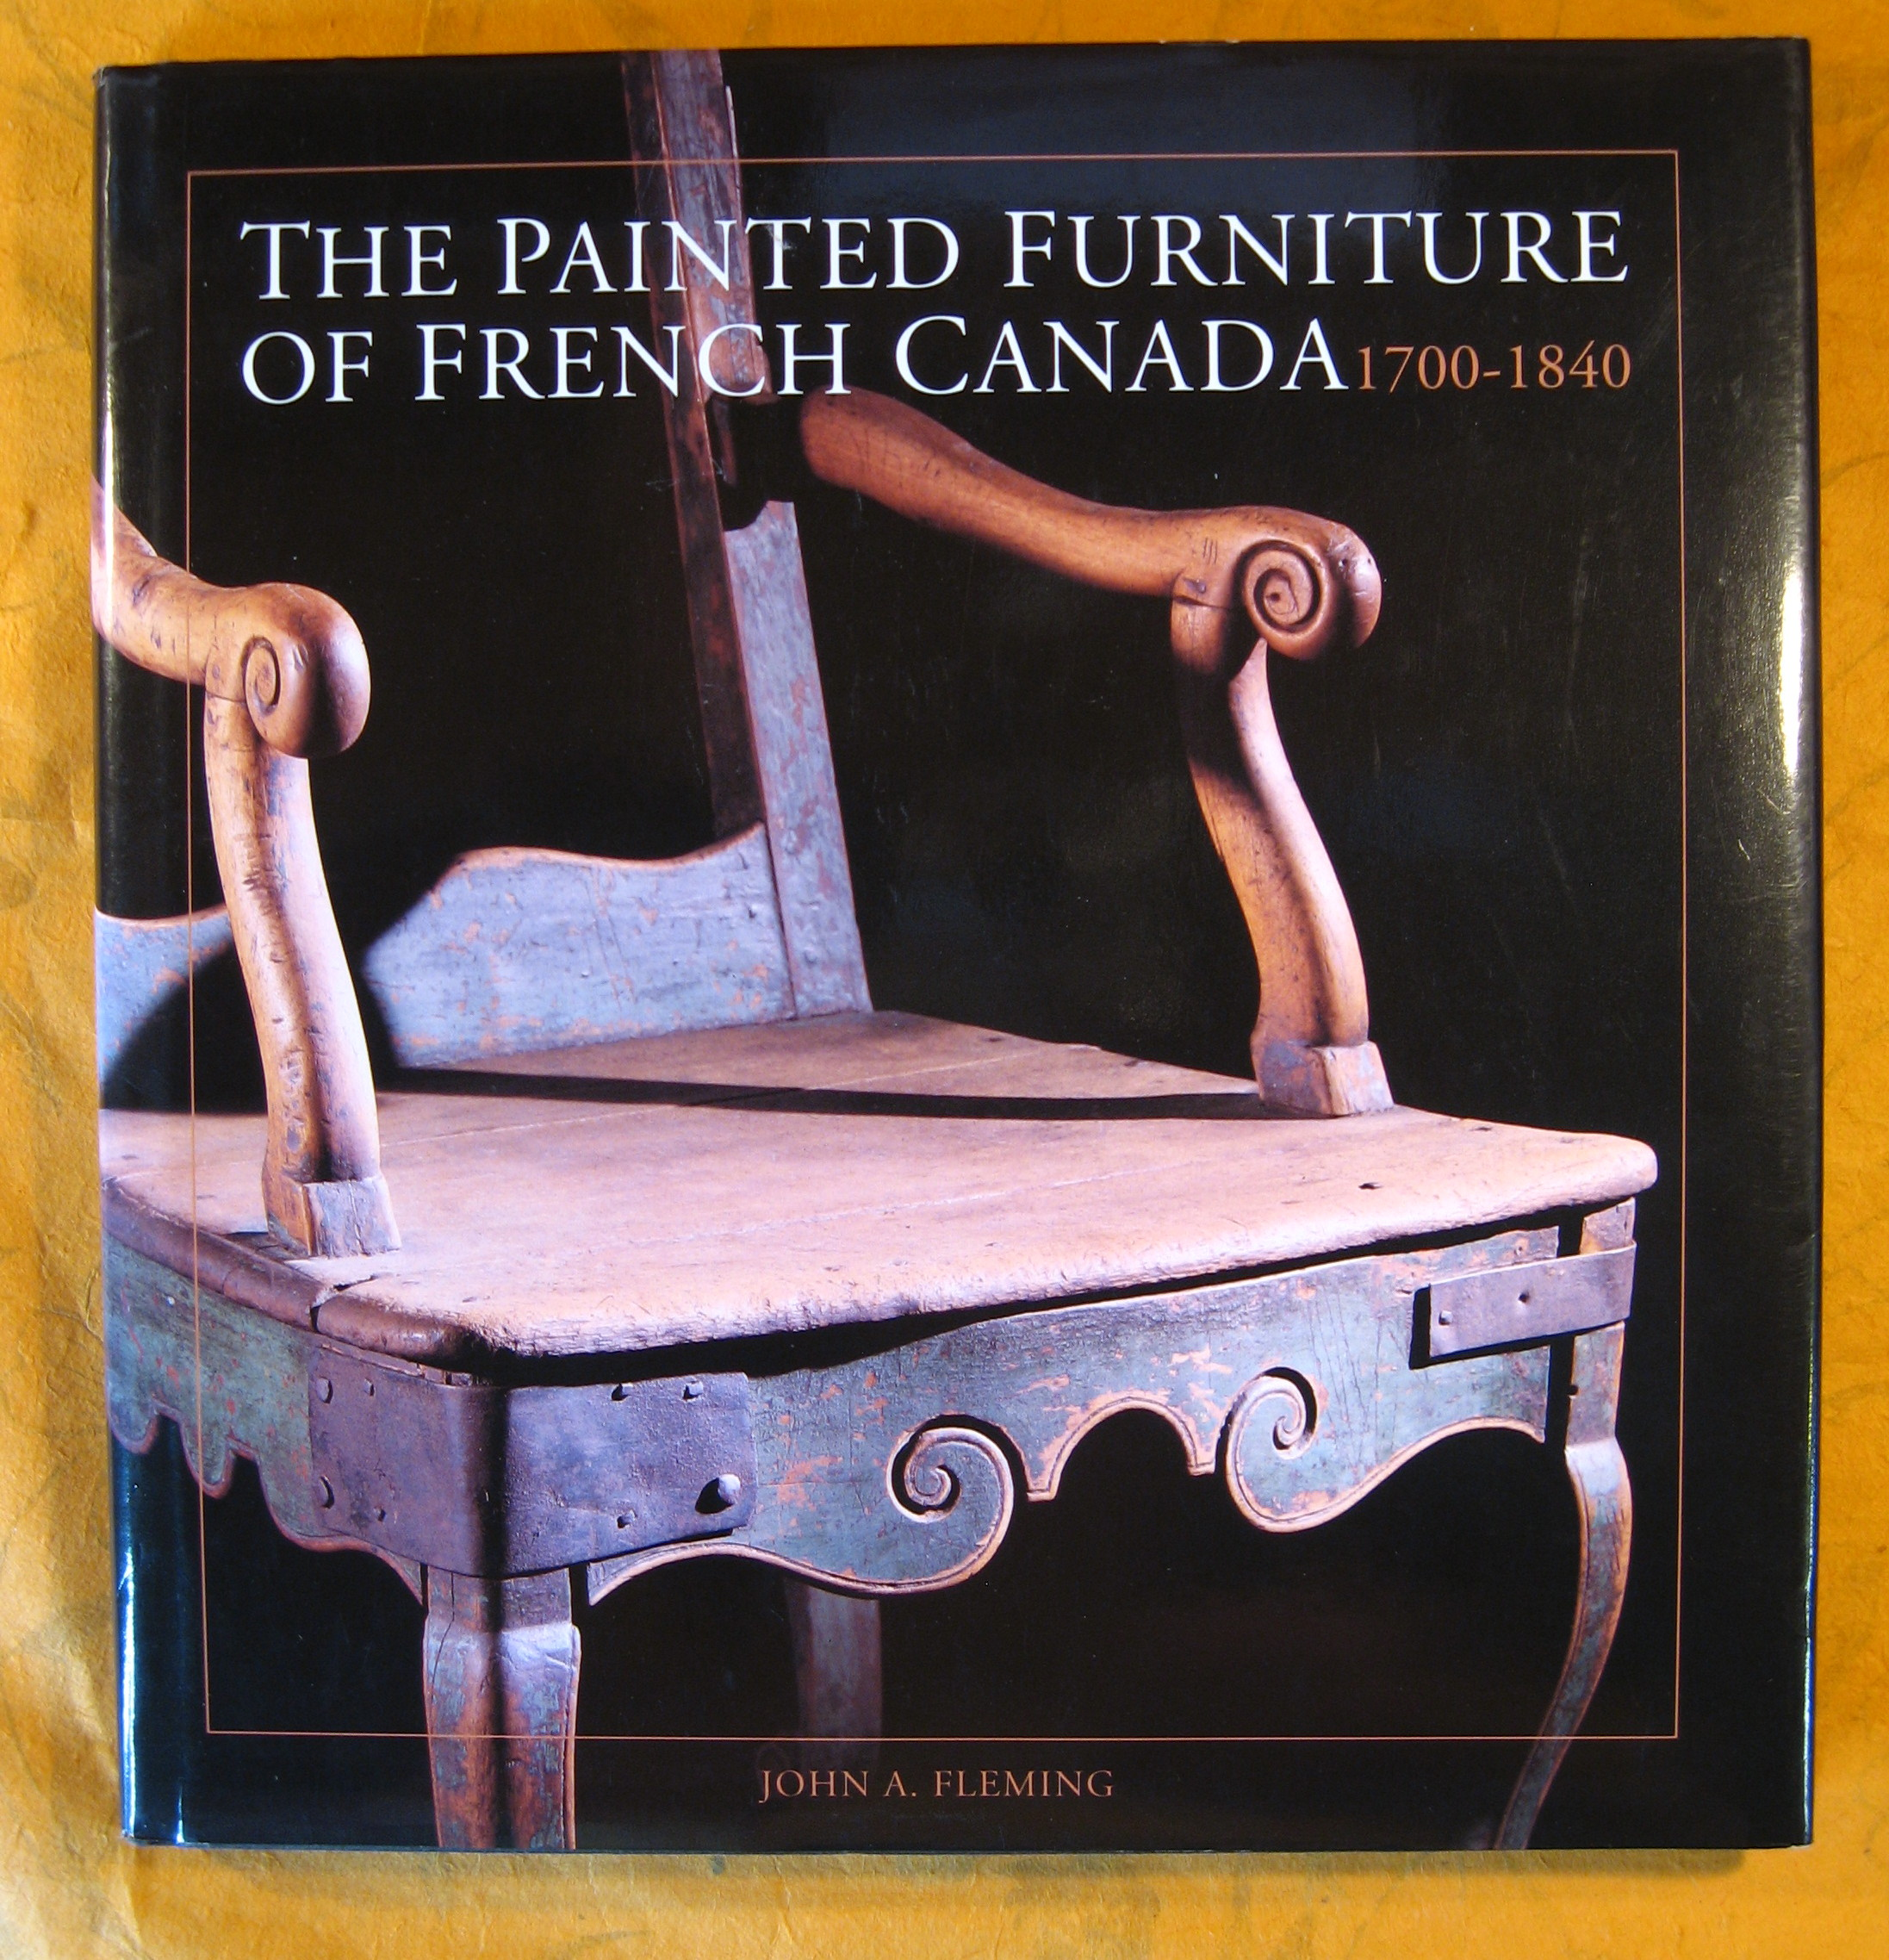 Image for The Painted Furniture of French Canada 1700-1840